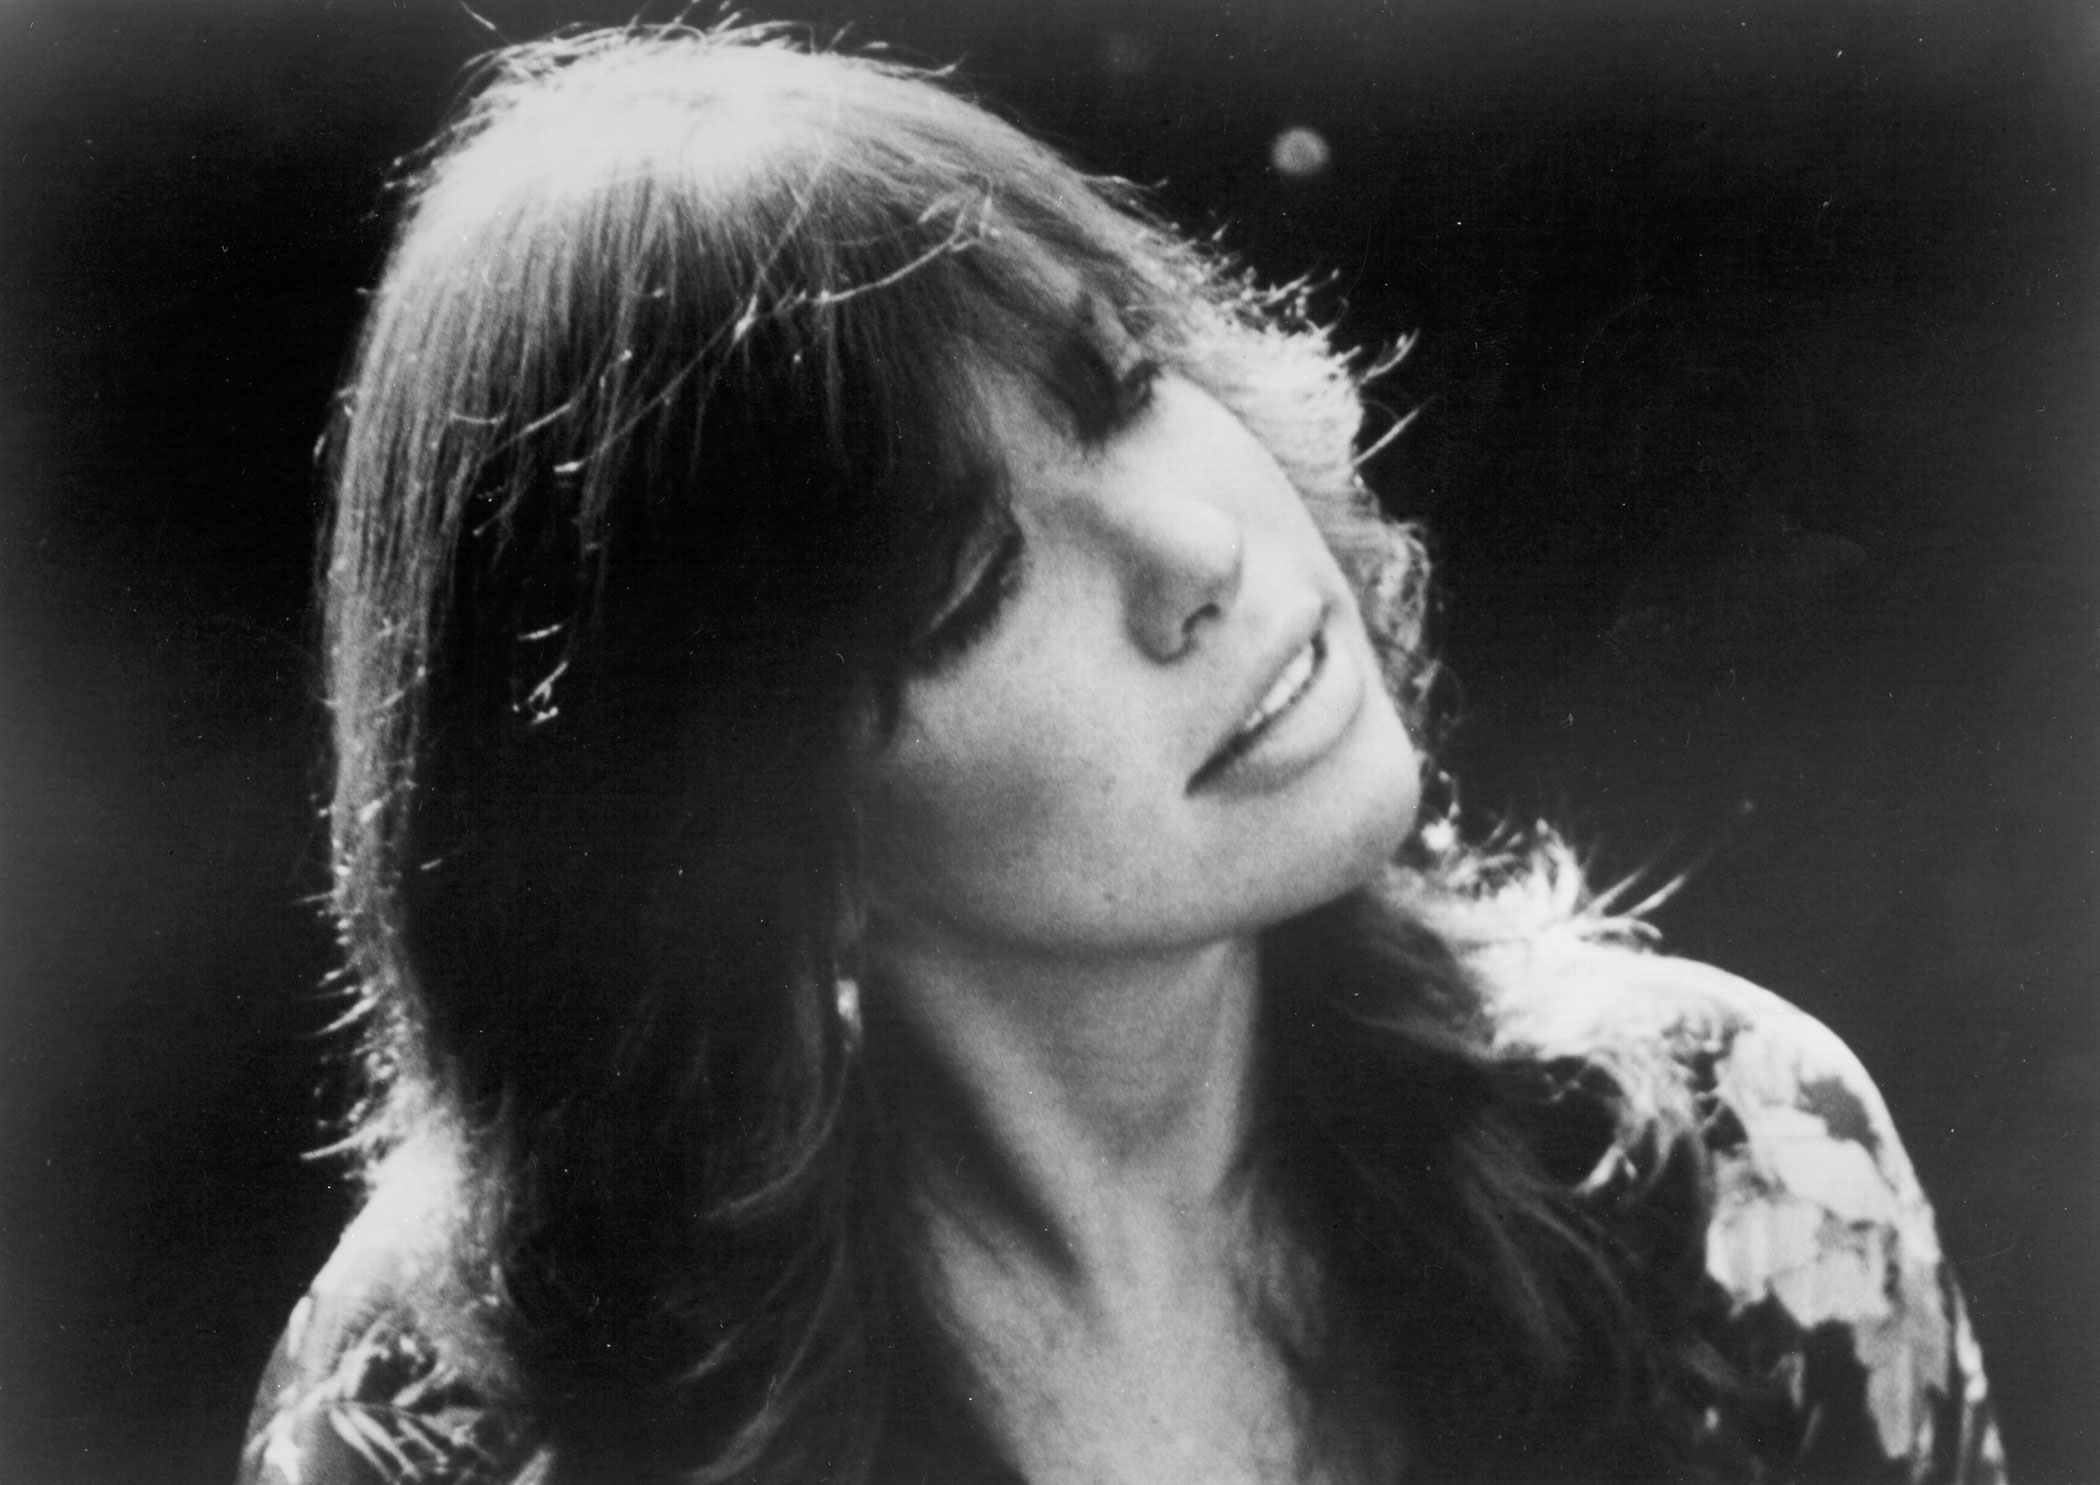 <b>Carly Simon</b> sang the theme song for <i>The Spy Who Loved Me</i>.